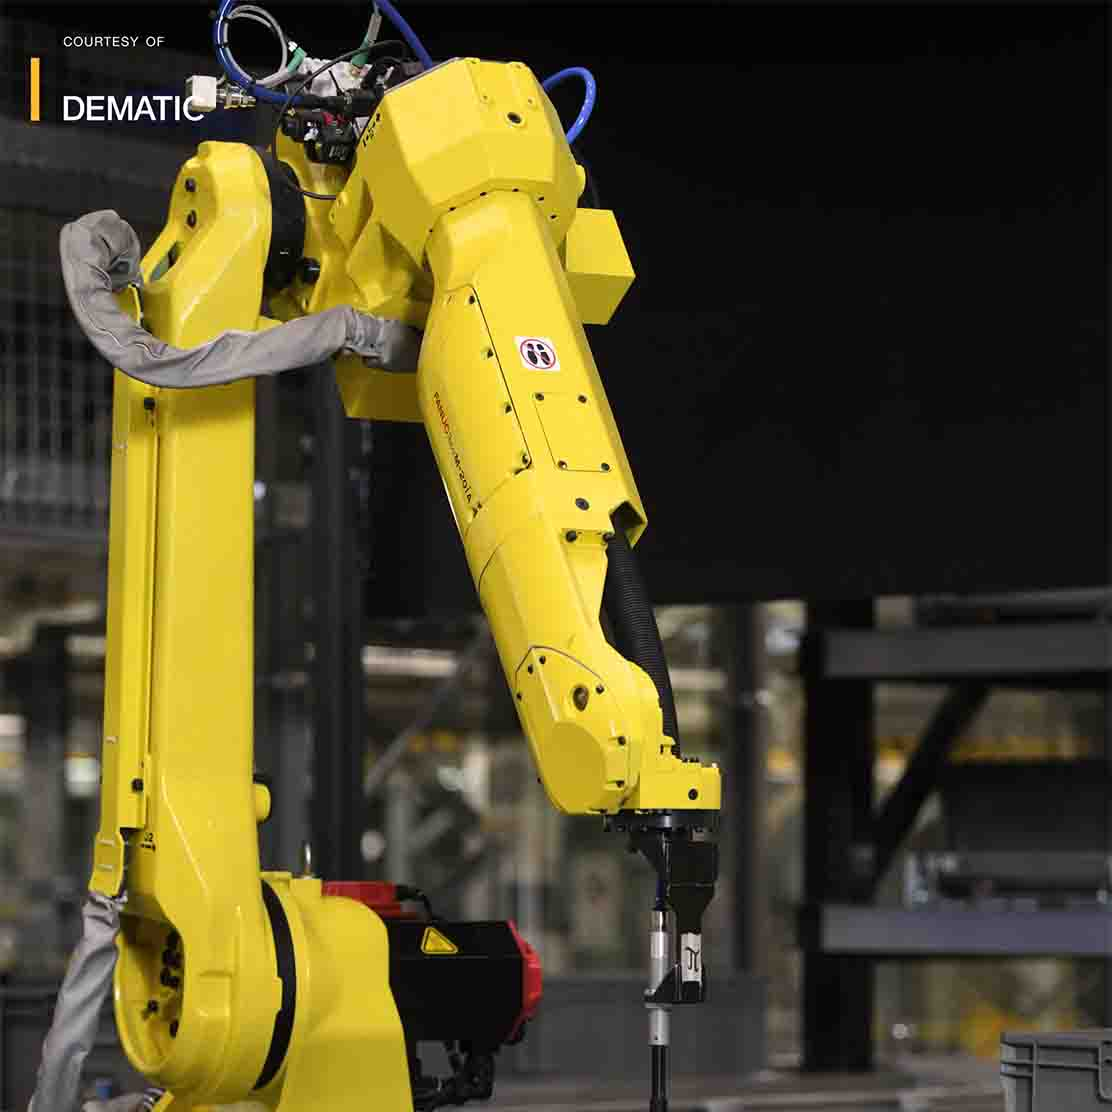 8 1 Dsc 7335 Robotic Systems - About Dematic - Shoppa's Material Handling